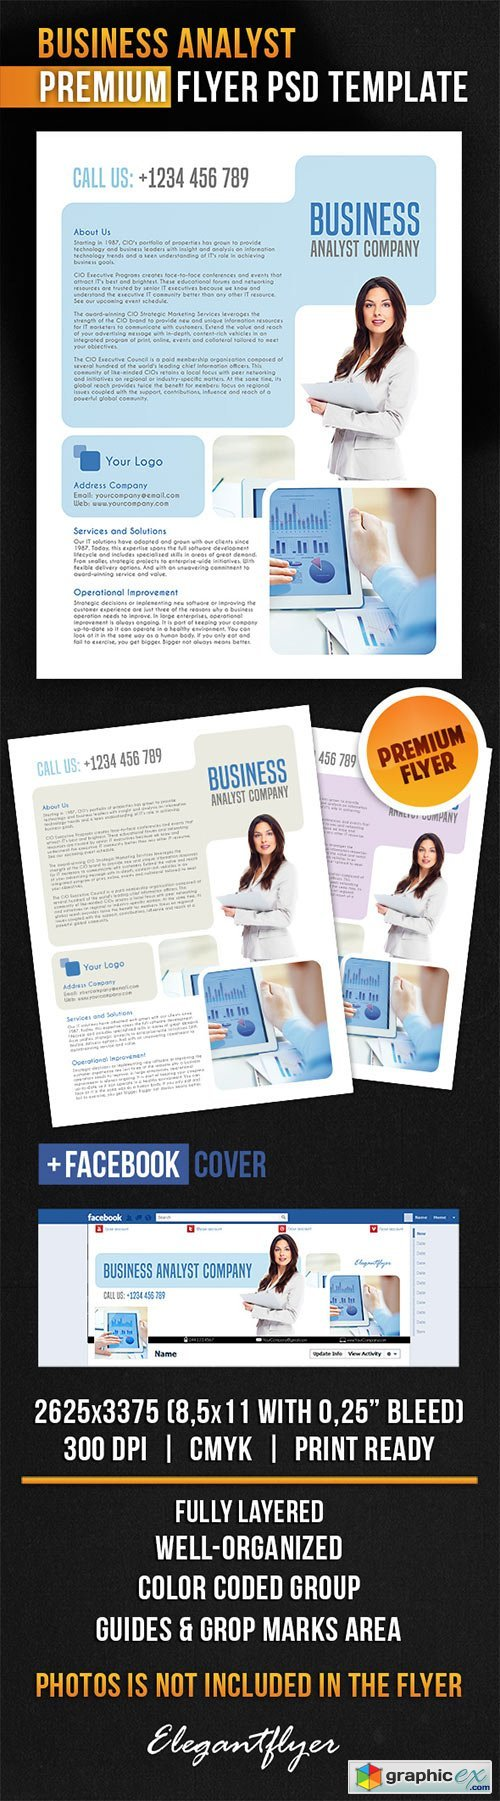 Business Analyst Flyer PSD Template + Facebook Cover